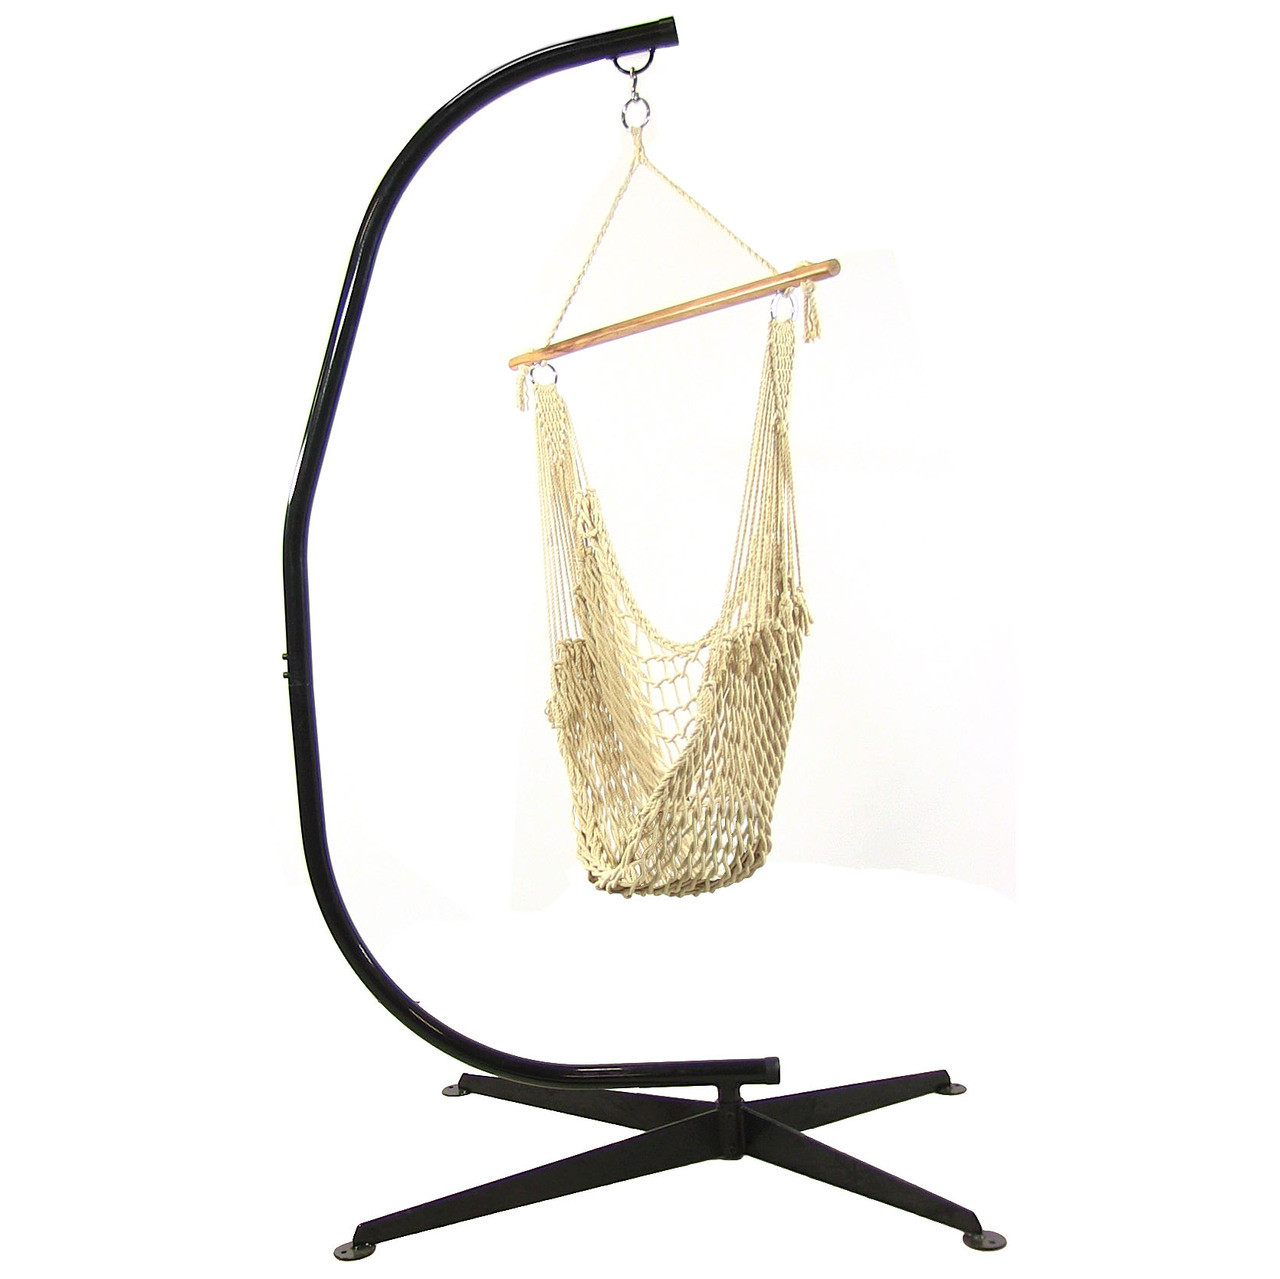 Sunnydaze Cotton Rope Hammock Chair Wood Bar C Stand Combo Natural  Photo